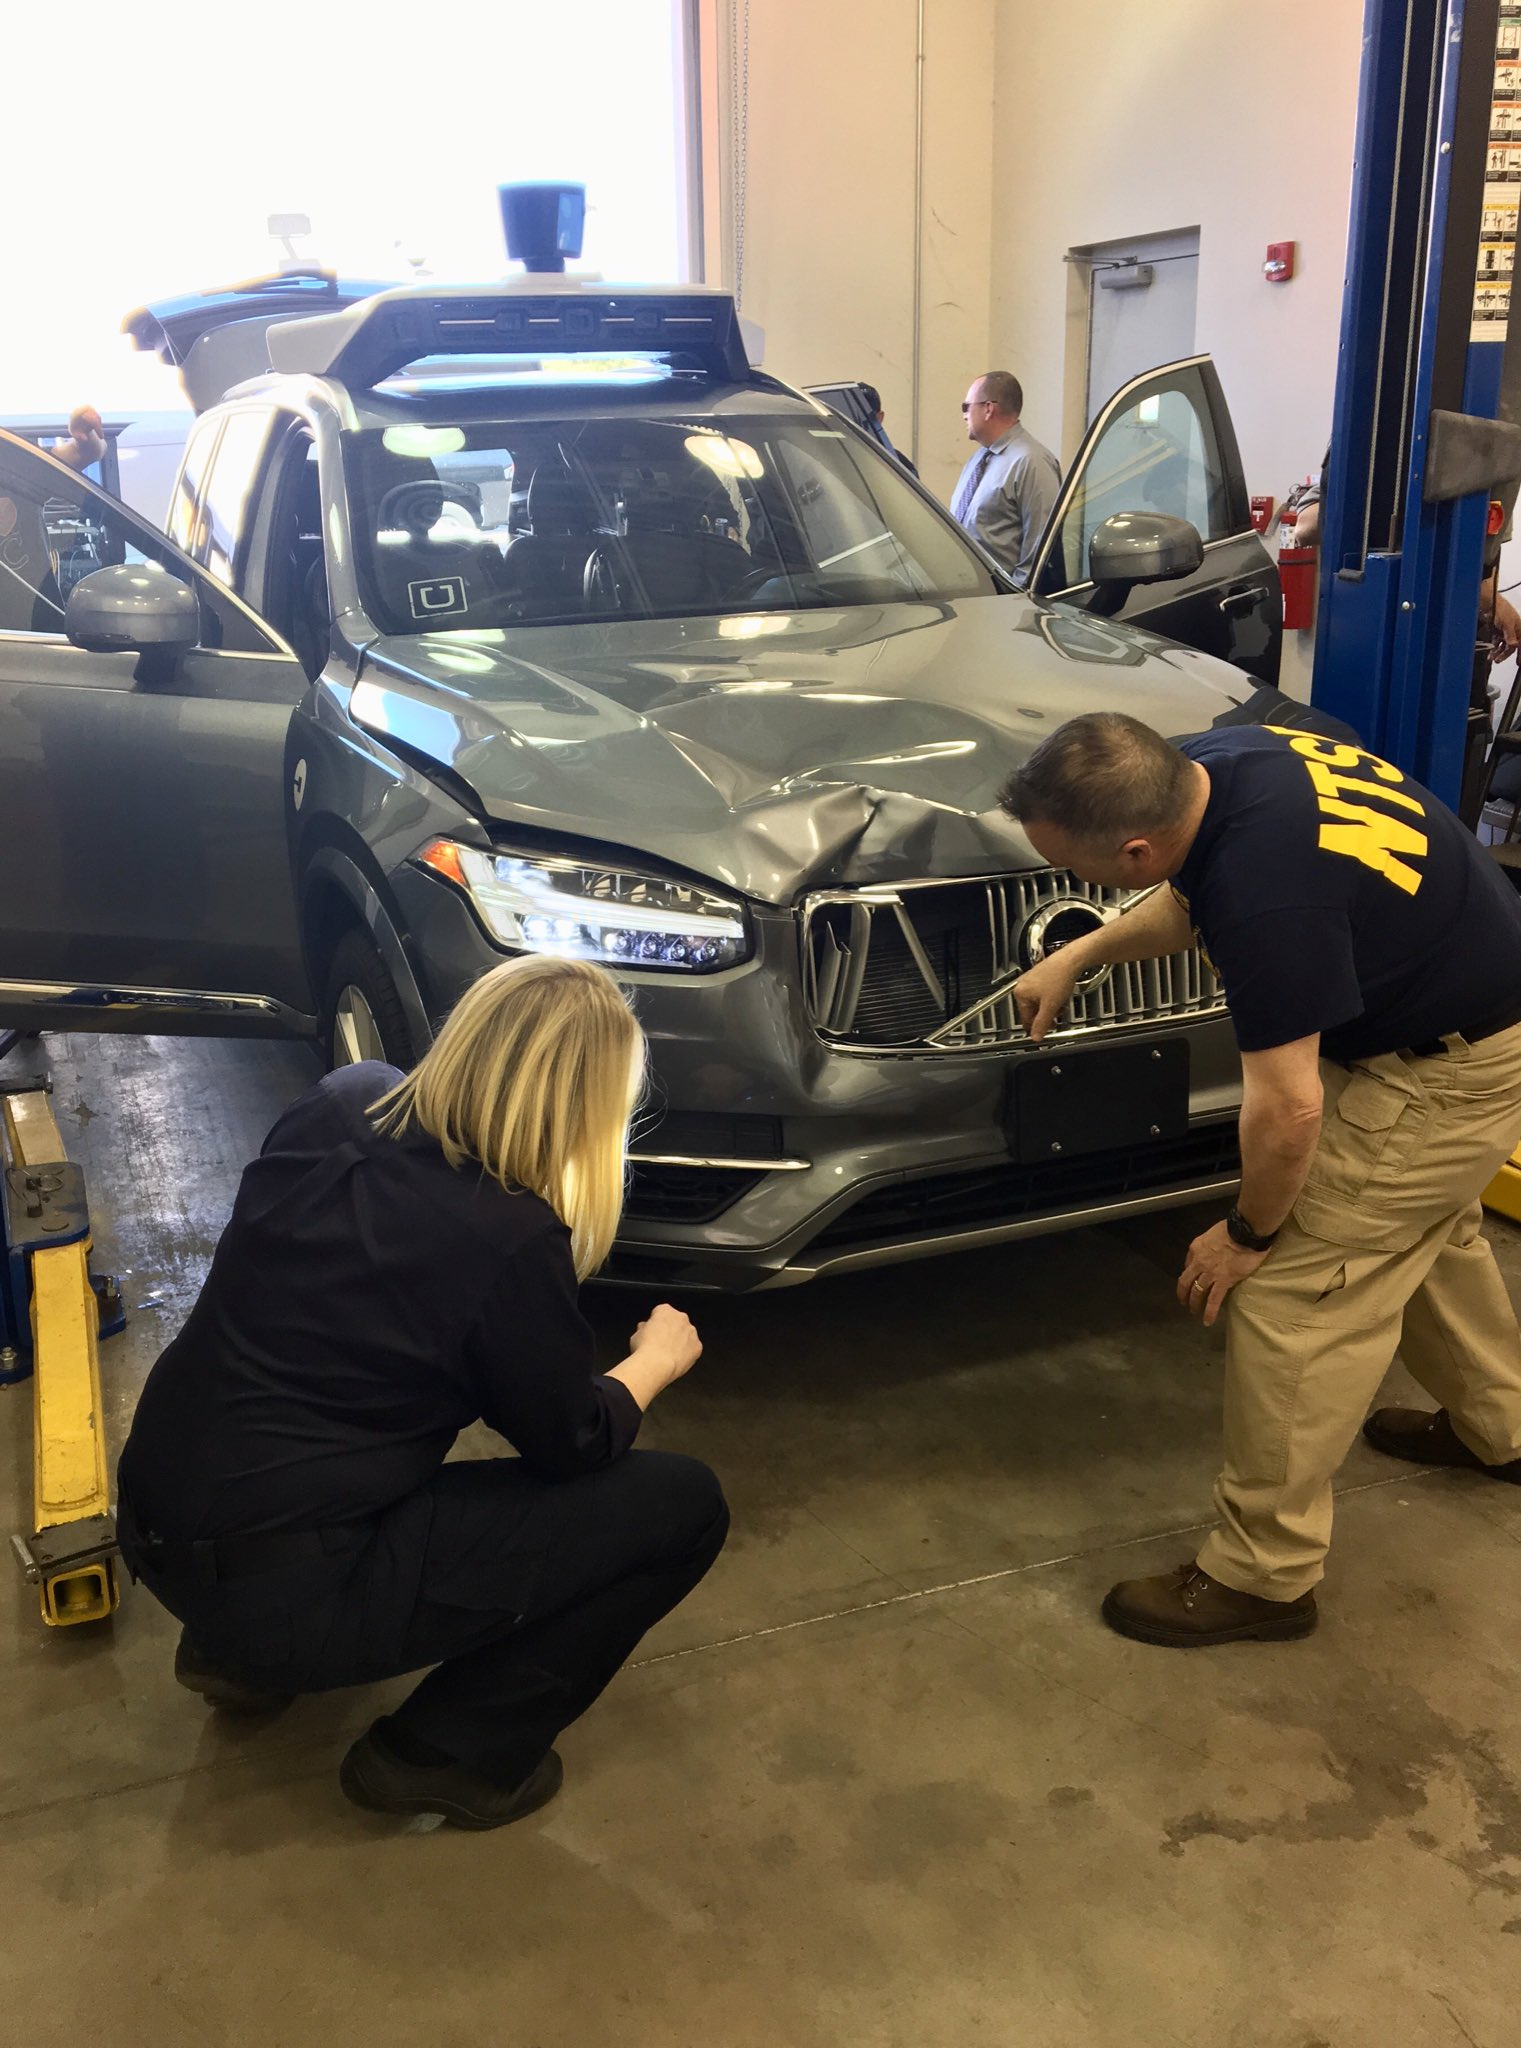 source NTSB Uber self driving Volvo involved in fatal accident with pedestrian